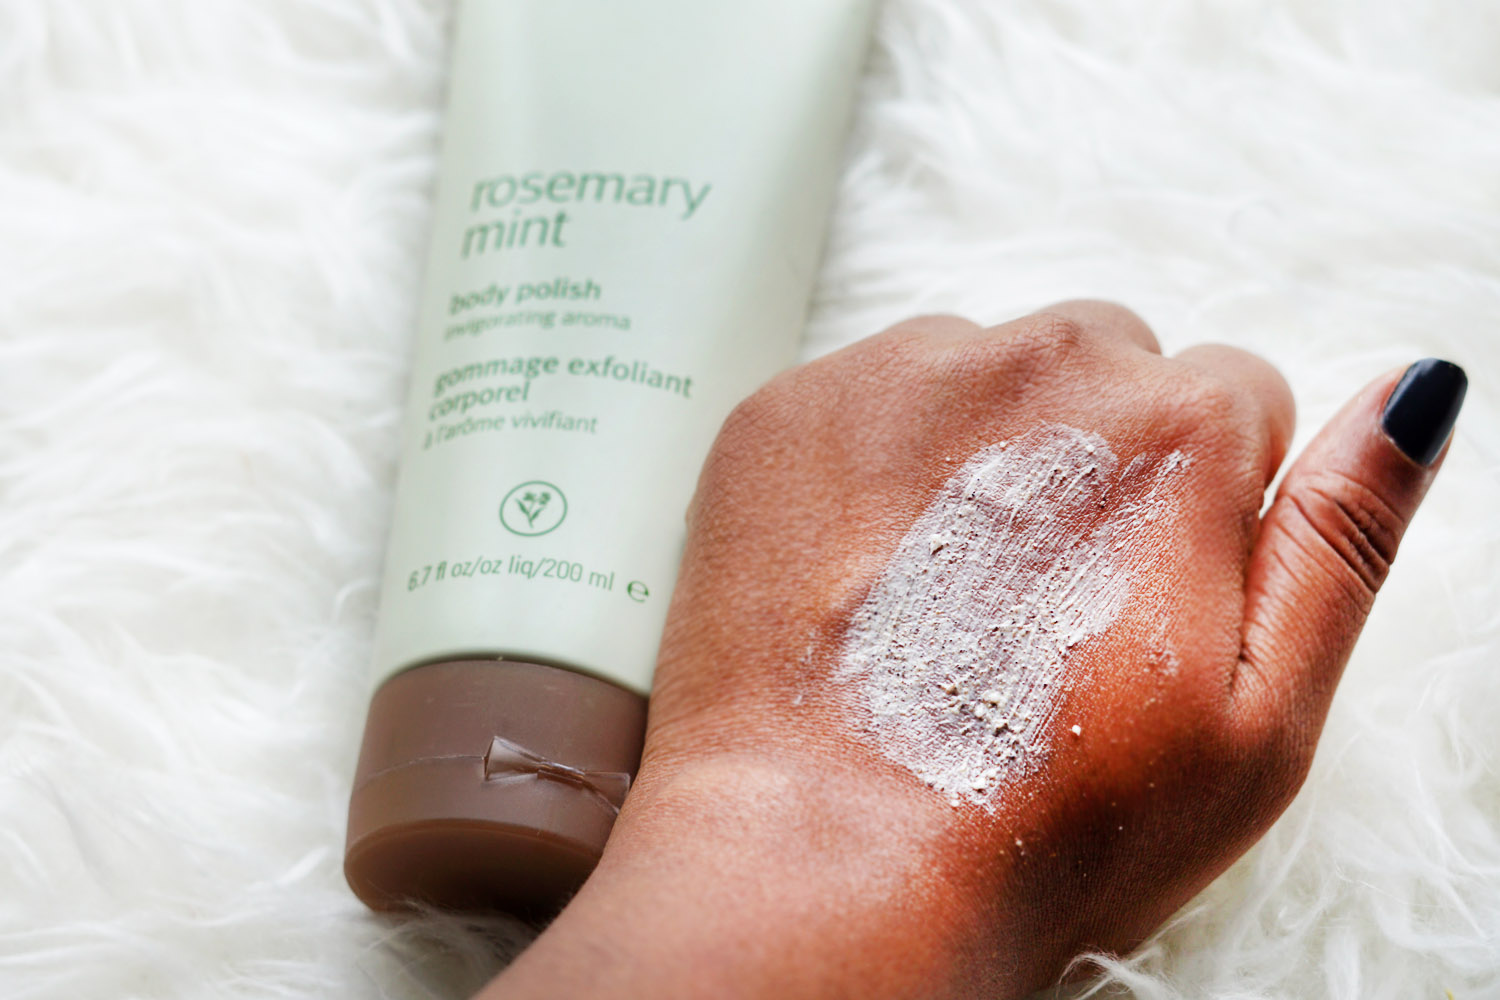 aveda-rosemary-mint-body-polish-review-beauty-influencer